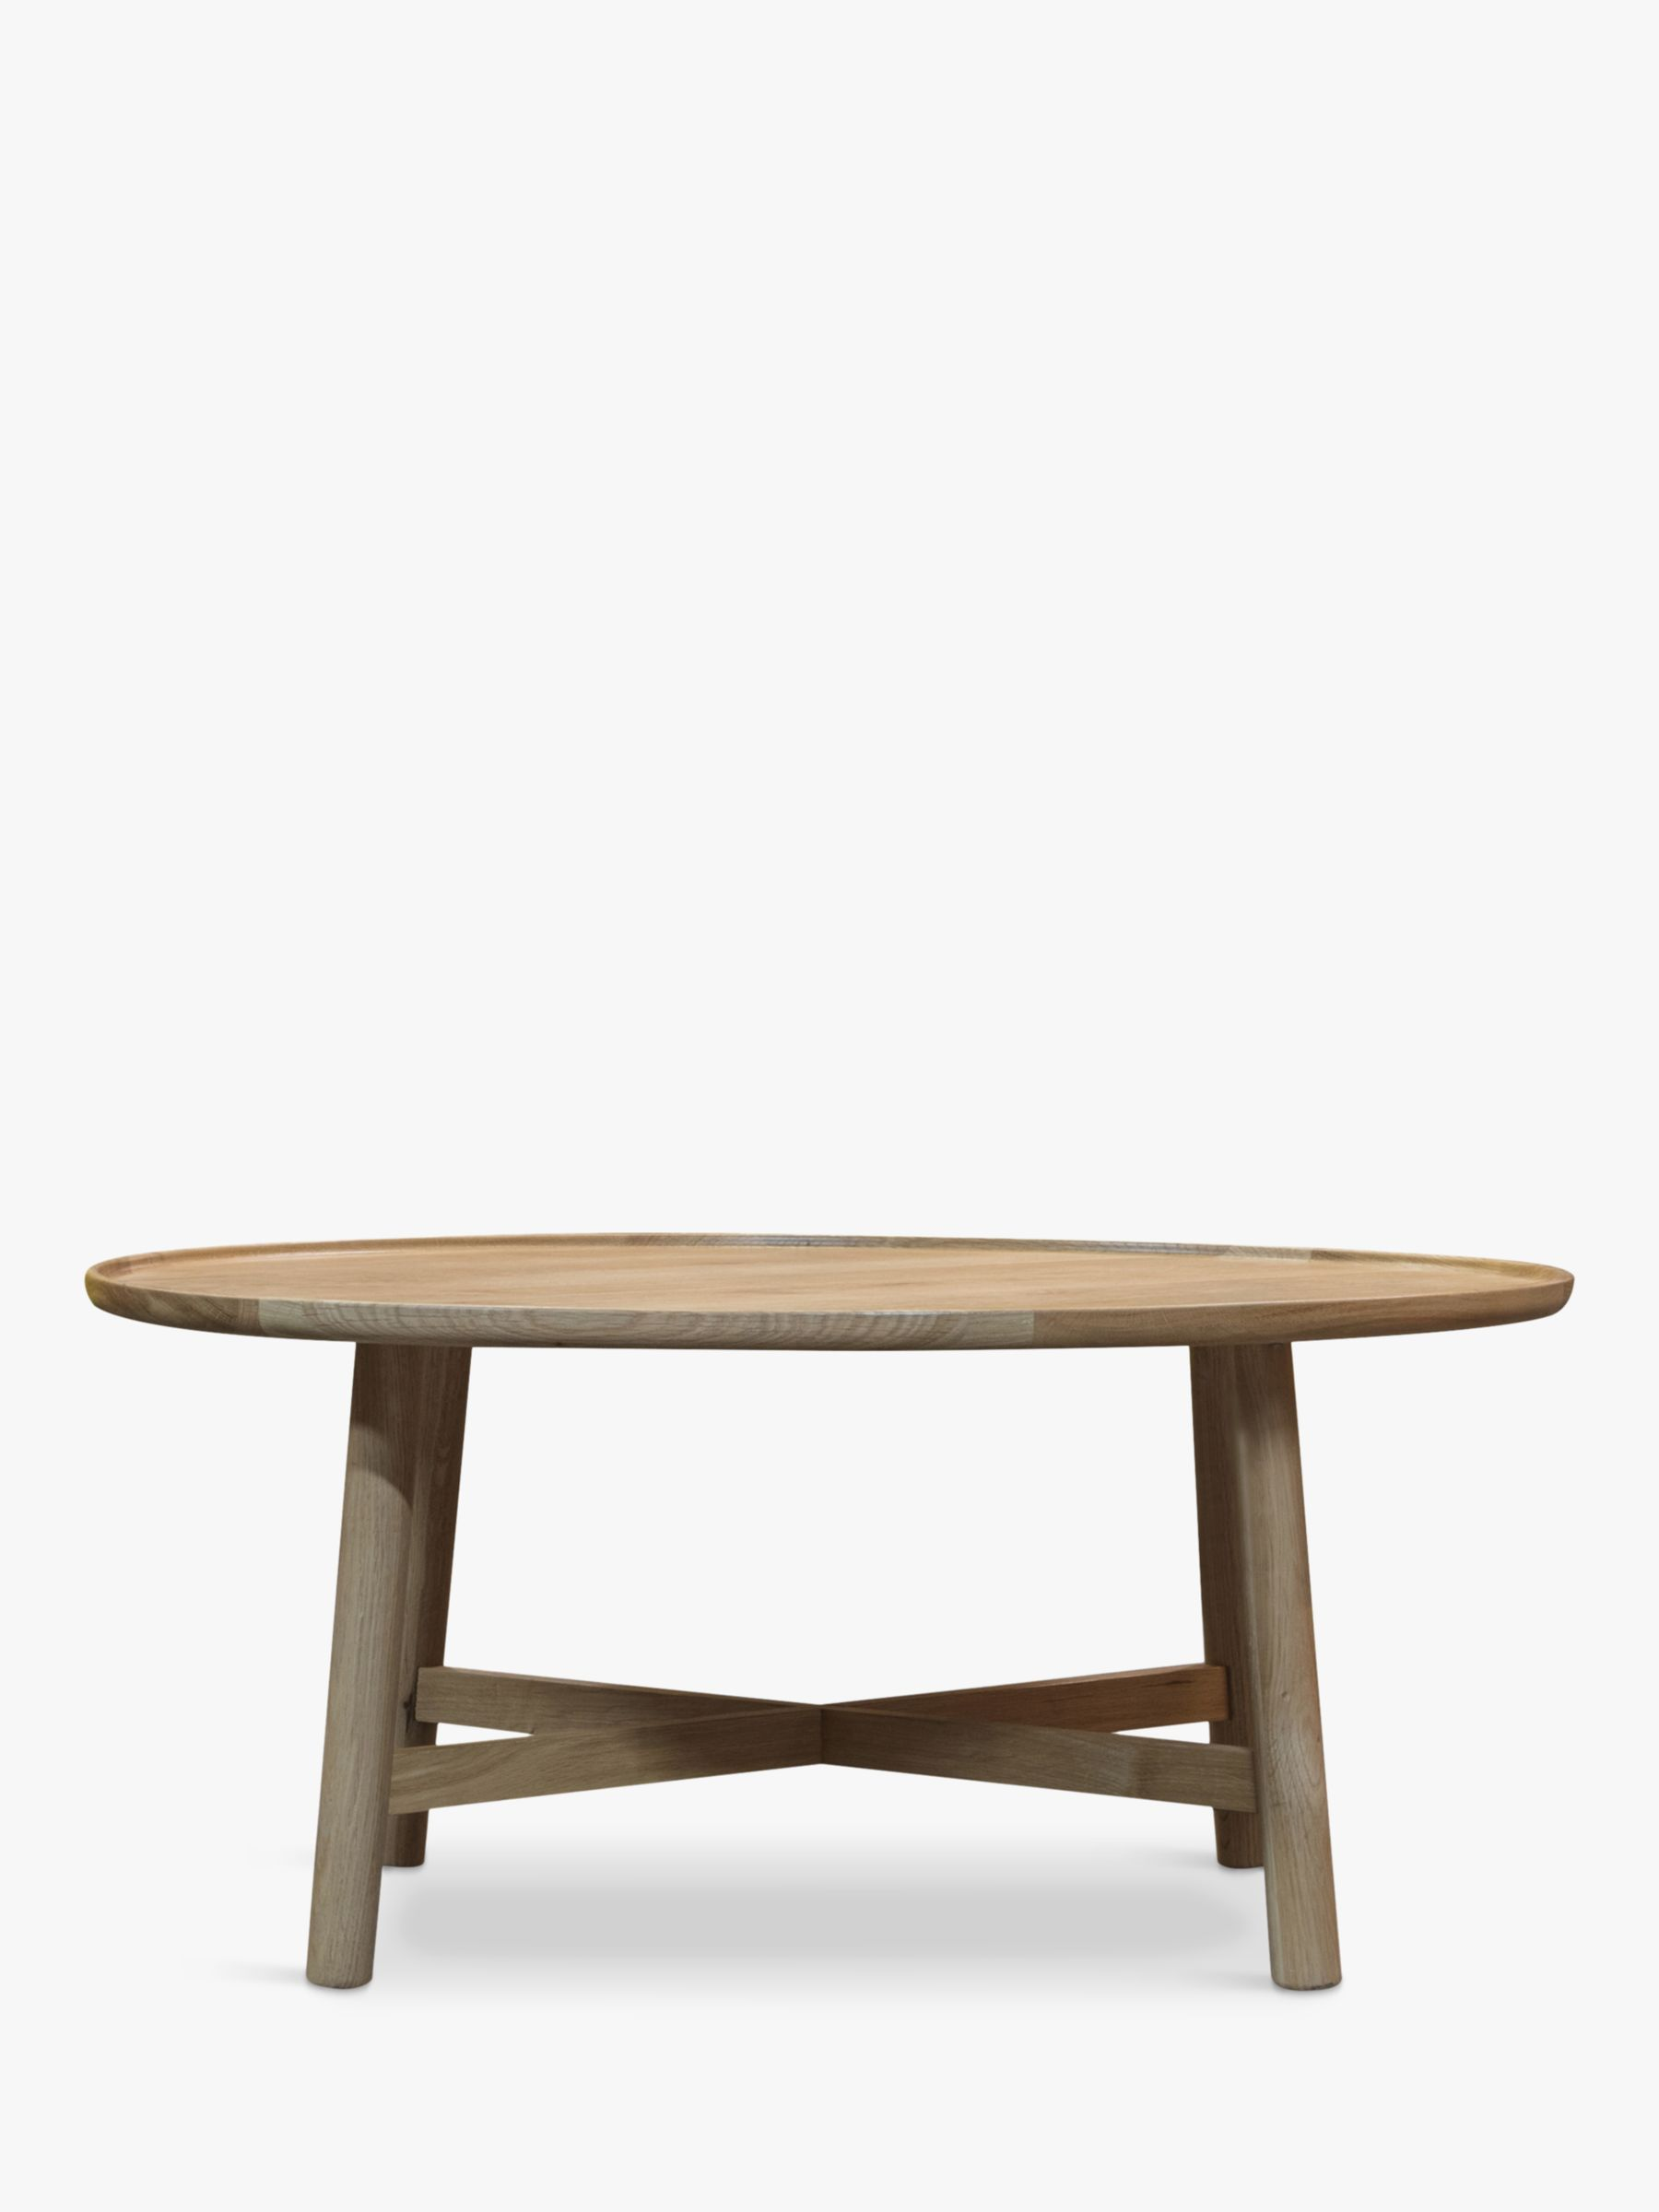 Gallery Direct Kingham Round Coffee Table, Oak